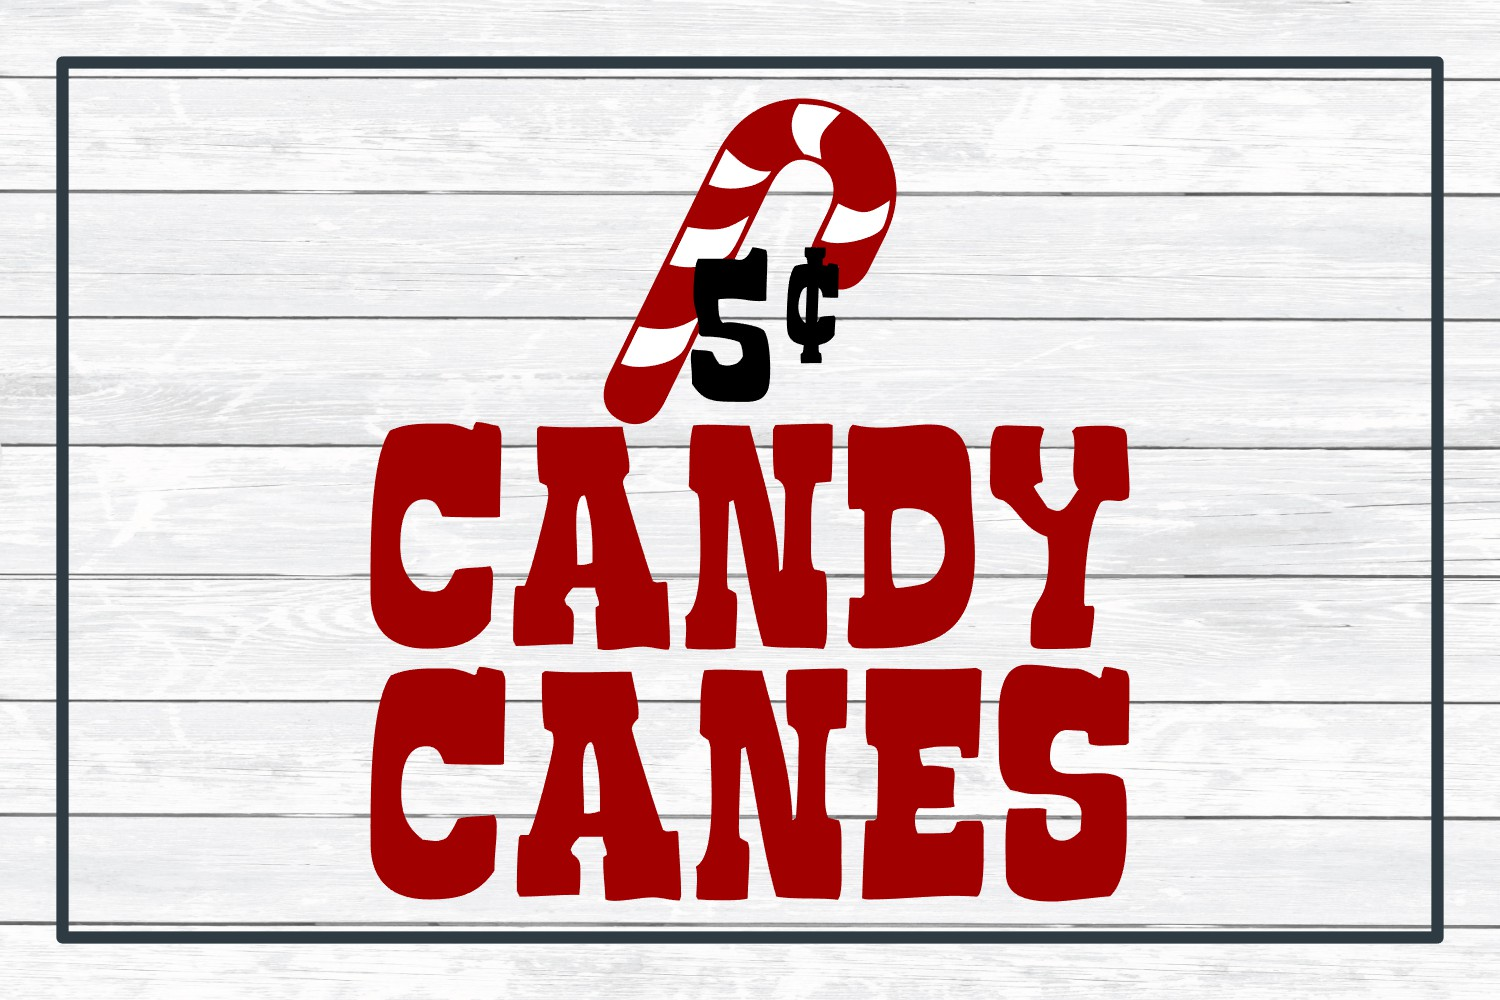 Candy Canes 5 Cents, Christmas Winter Holiday SVG Cut File example image 3